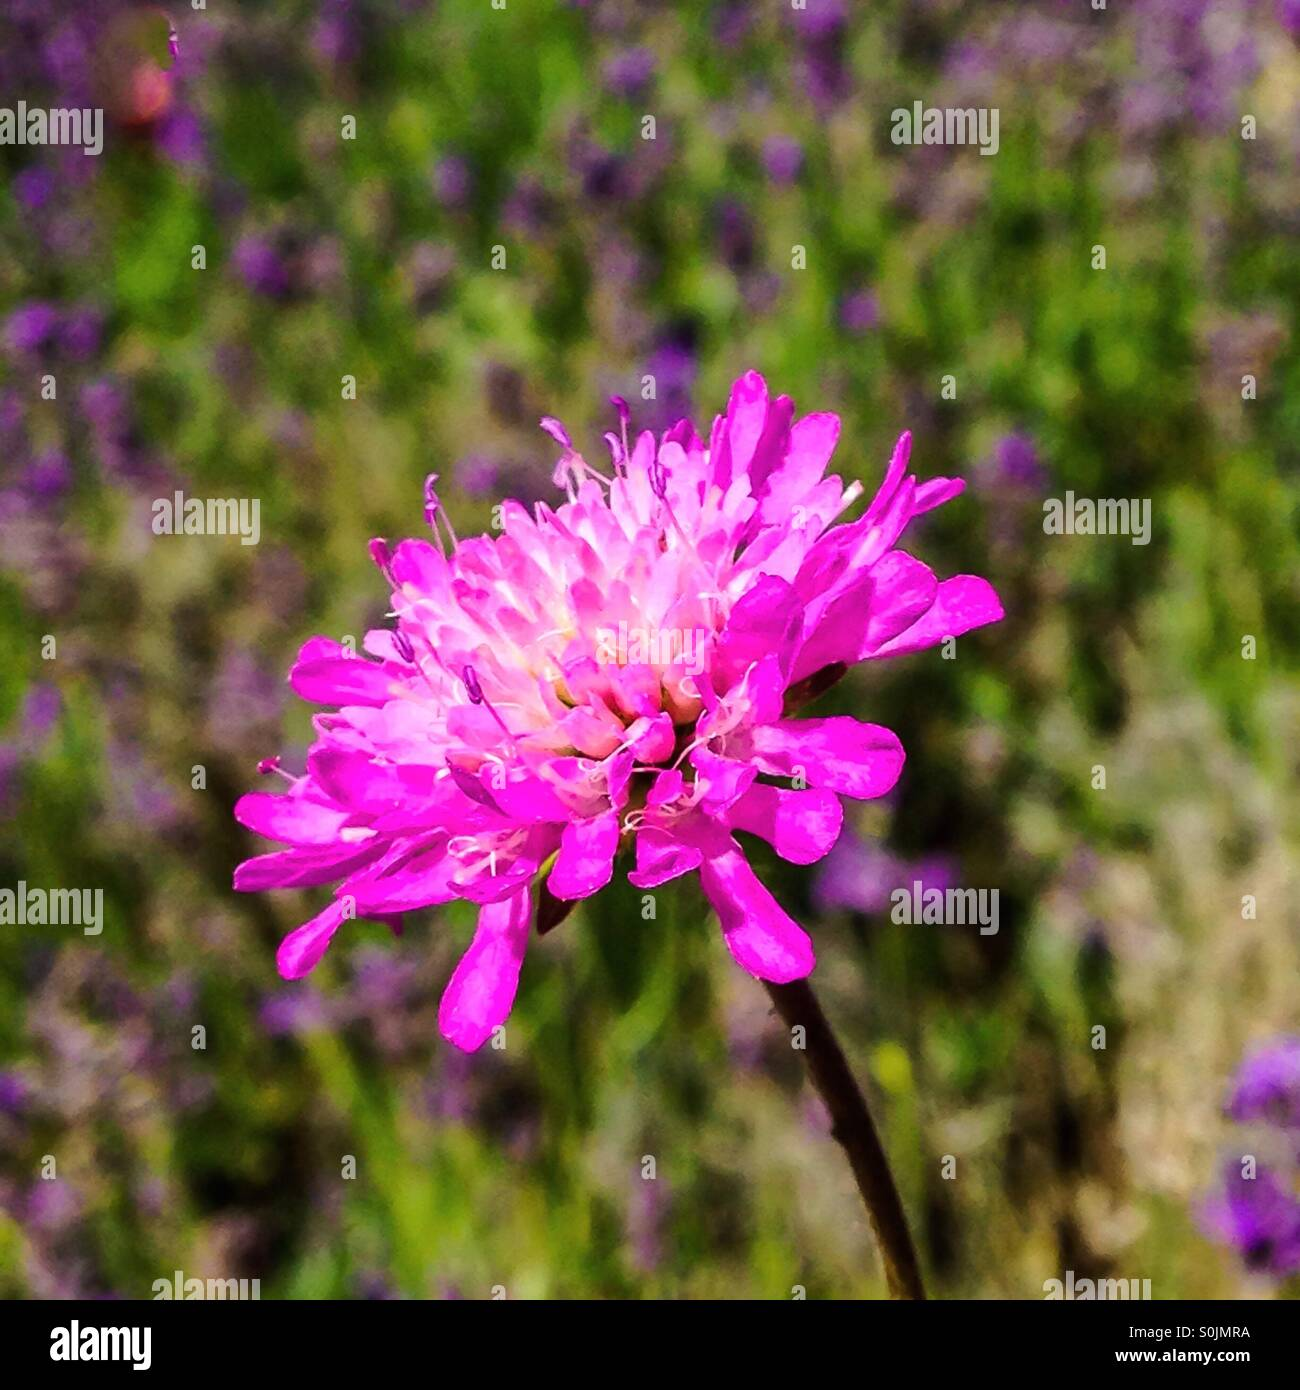 Pink Scabious flower - Stock Image